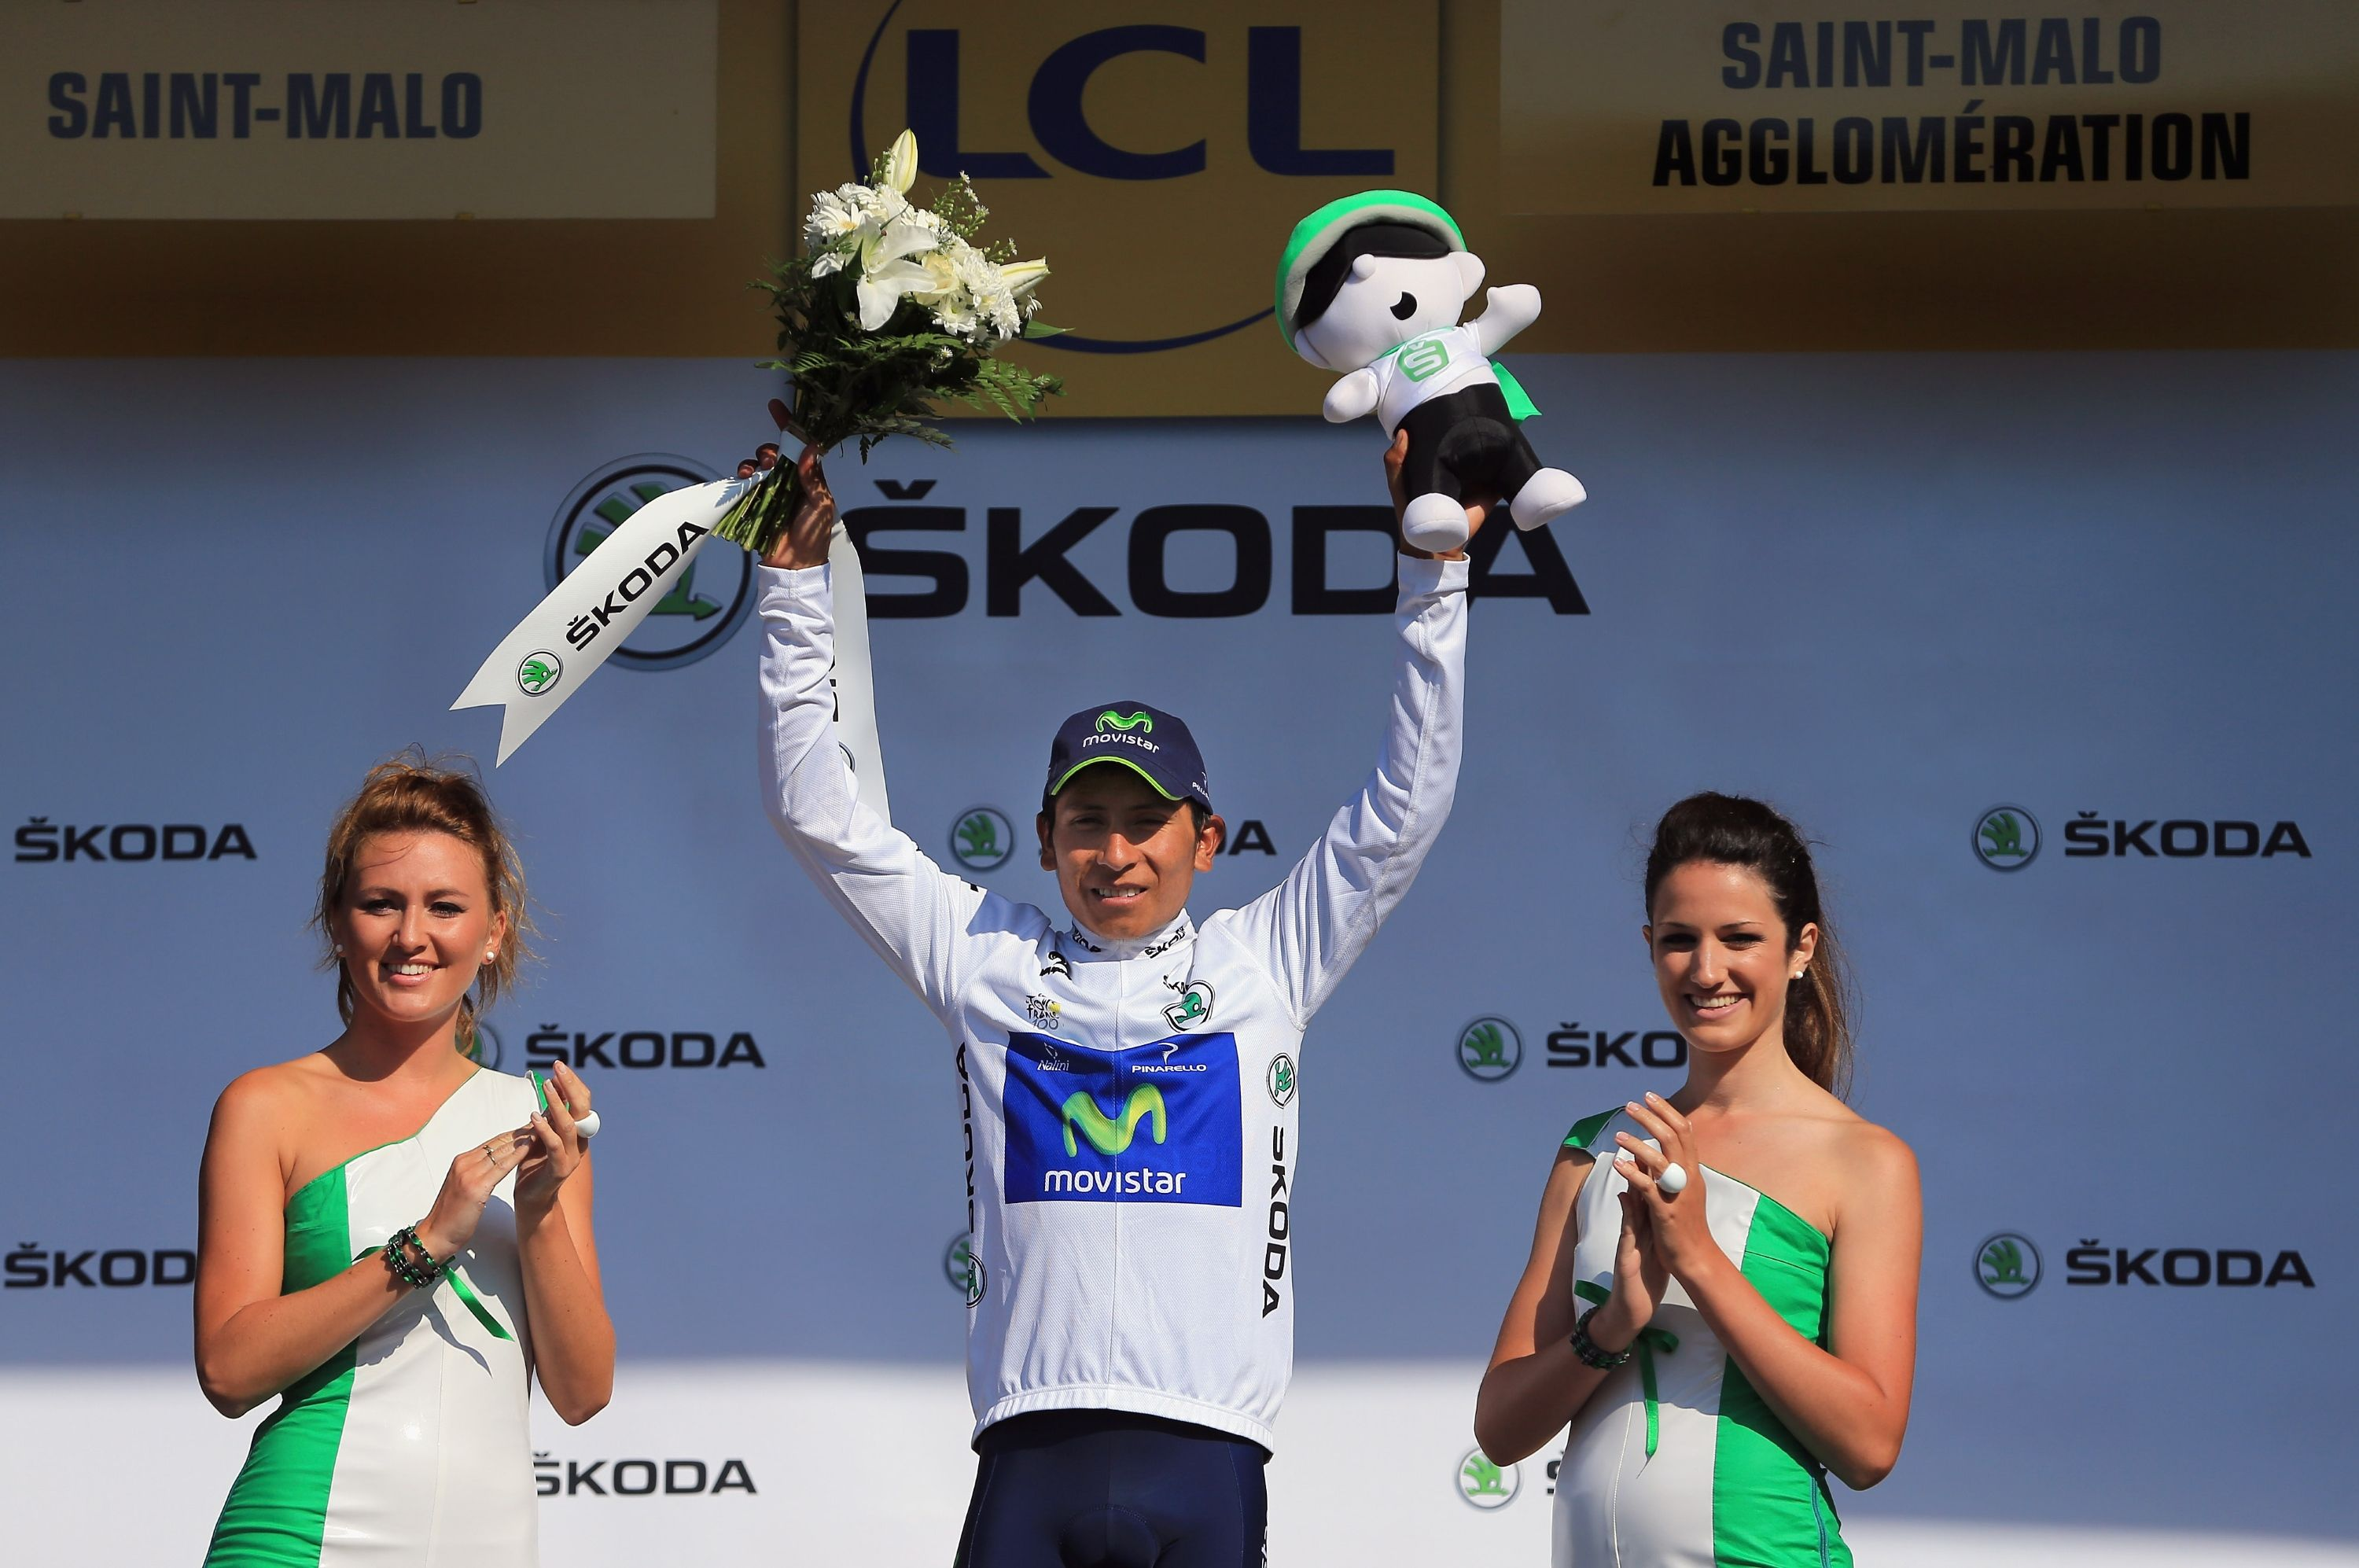 ST MALO, FRANCE - JULY 09: Nairo Alexander Quintana of Columbia riding for Movistar takes the podium after defending the best young rider's white jersey during stage ten of the 2013 Tour de France